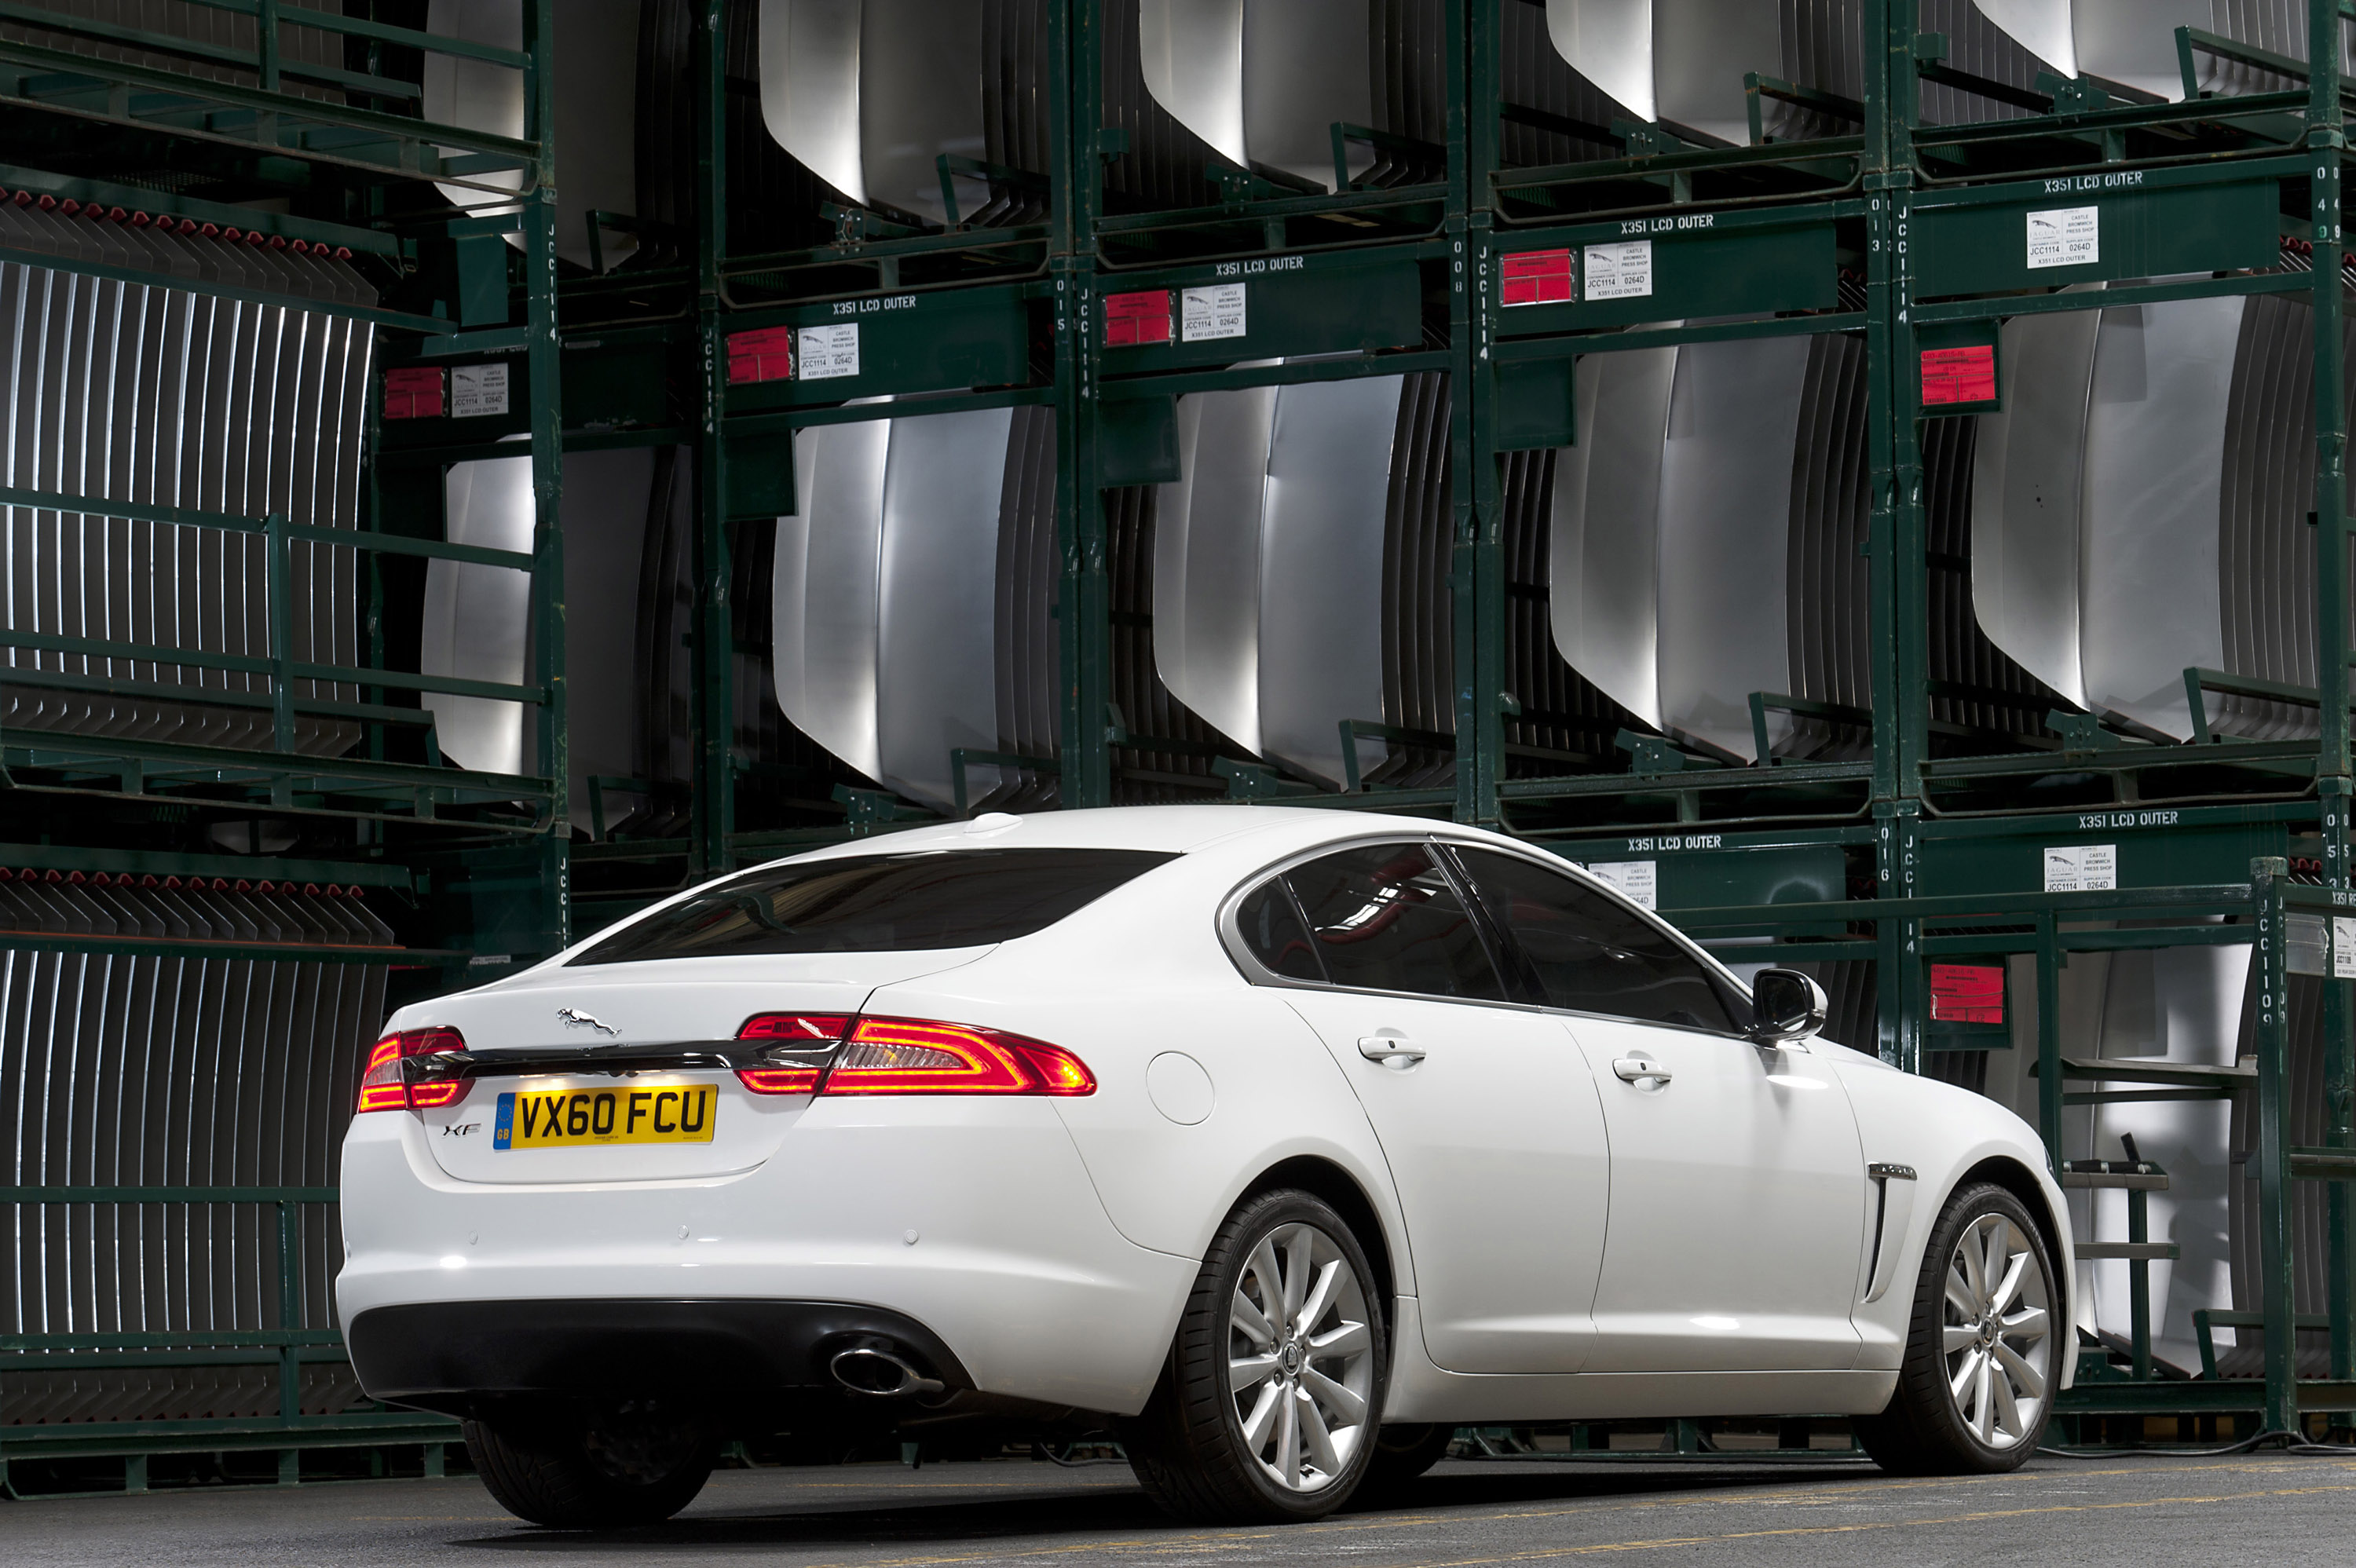 used cars uk motors jaguar for derby local xf sale derbyshire co in